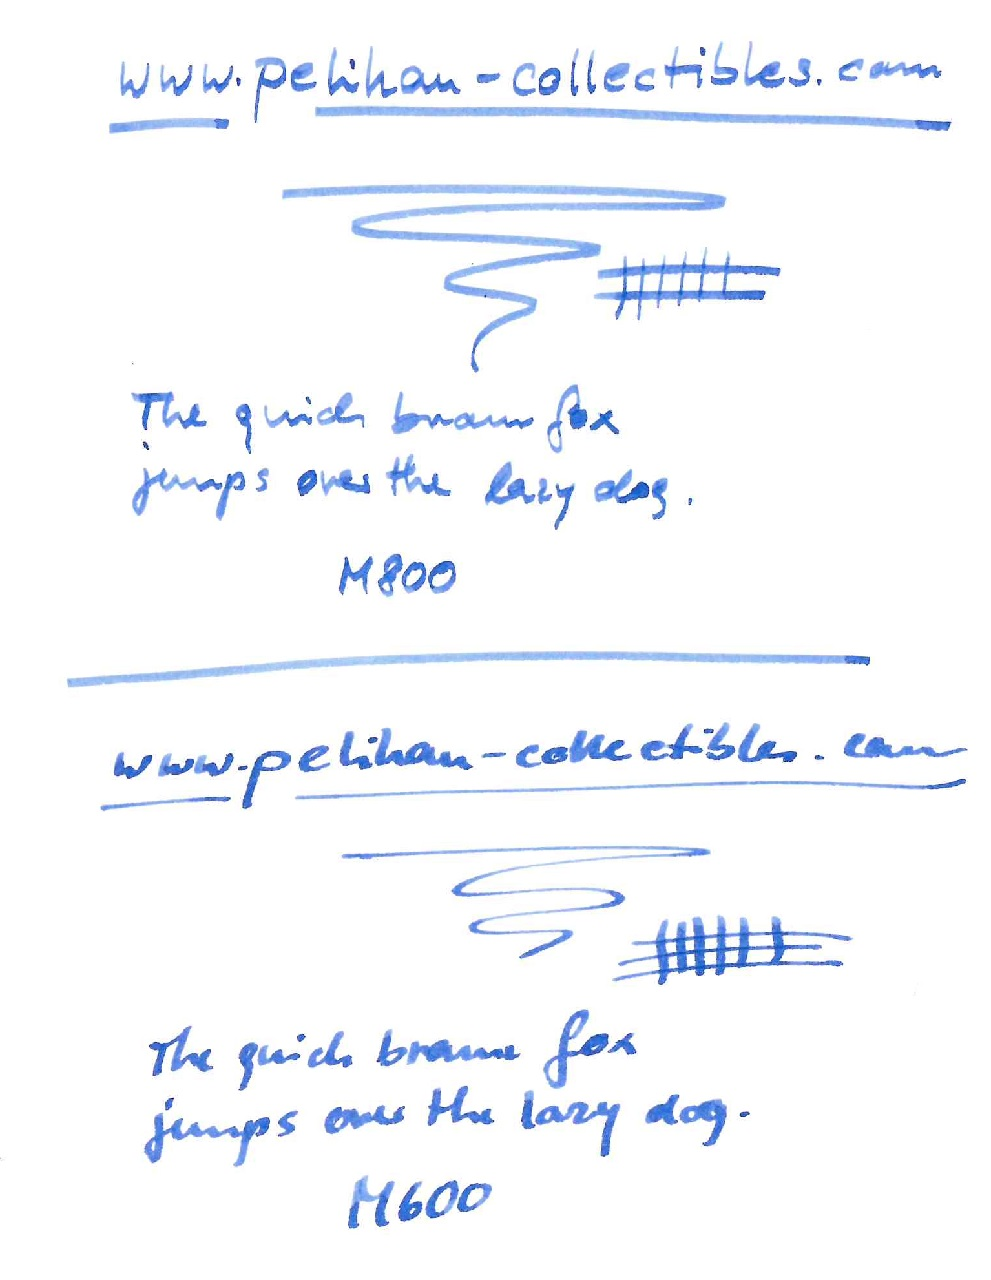 Pelikan M800 and M600 writing sample